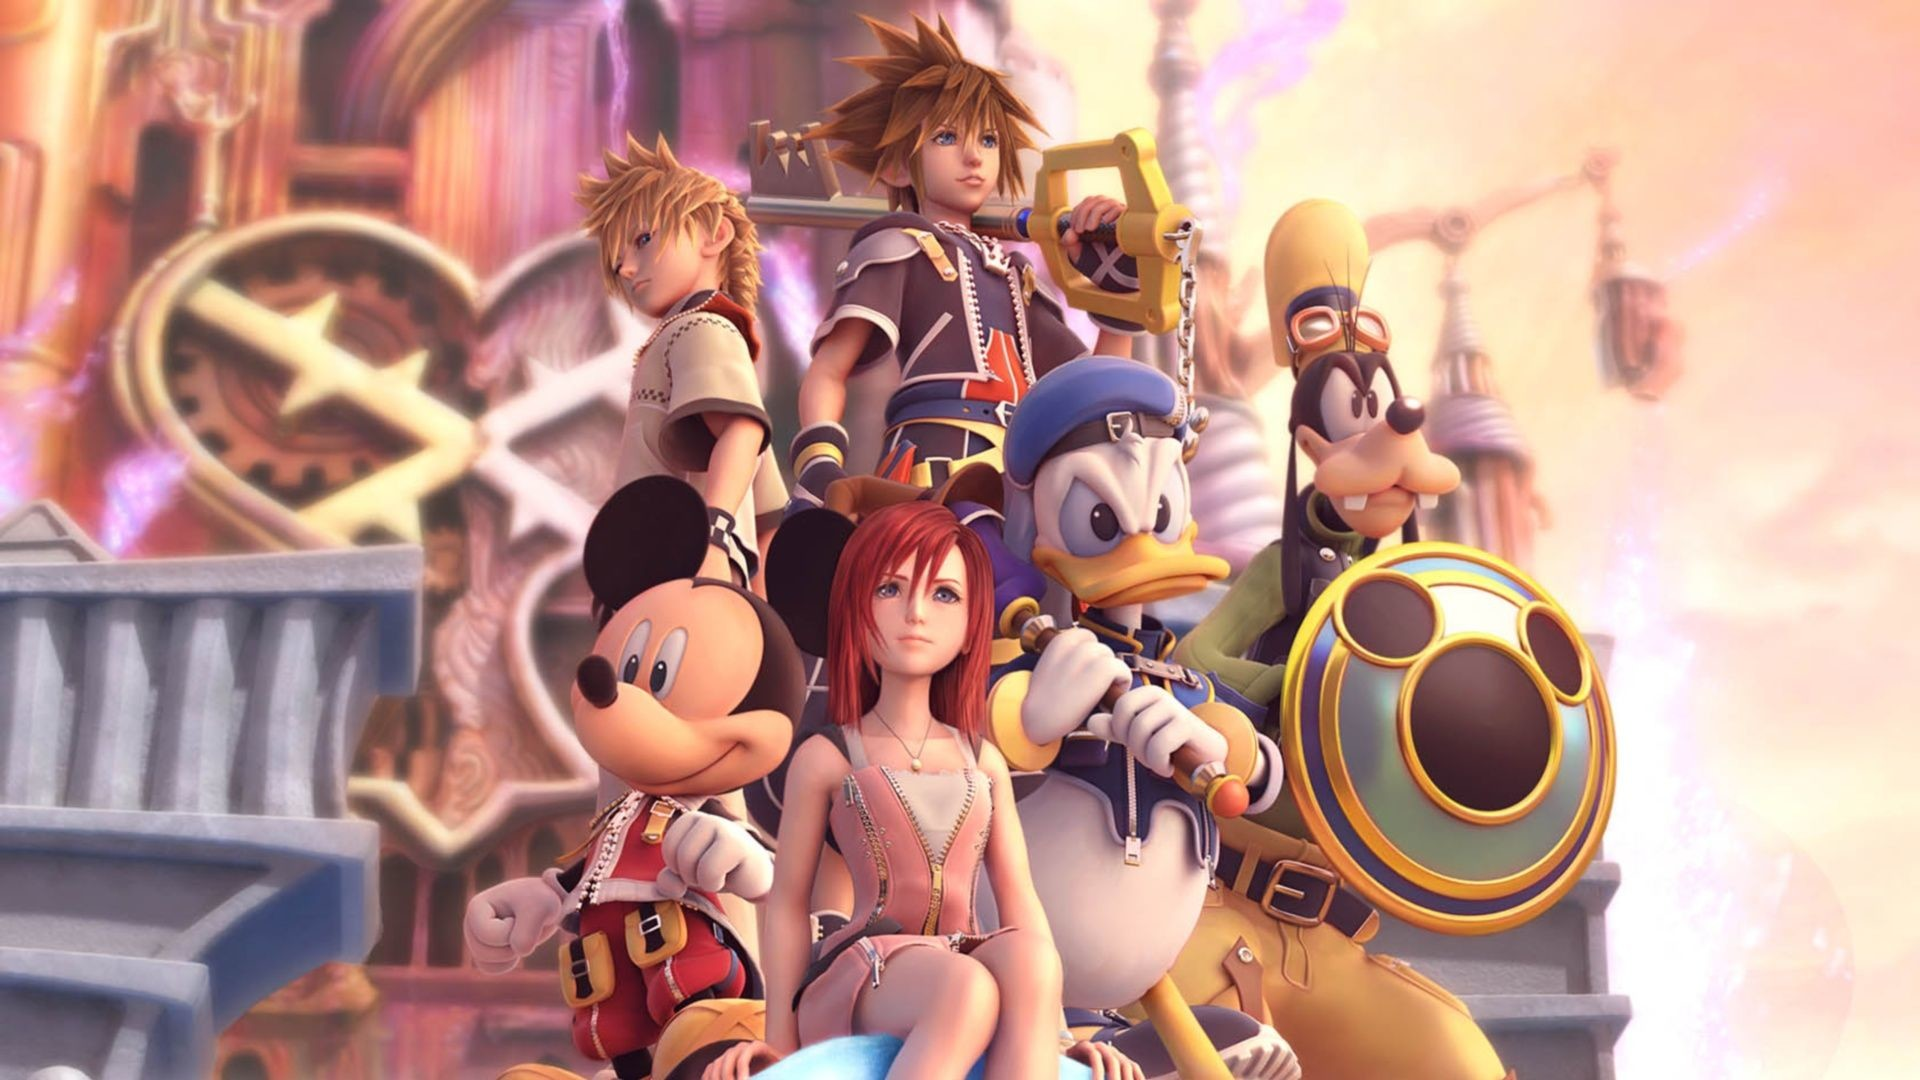 Res: 1920x1080, #Kingdom #Hearts [Gaming] #Sora #Kairi #Roxas #Mickey #